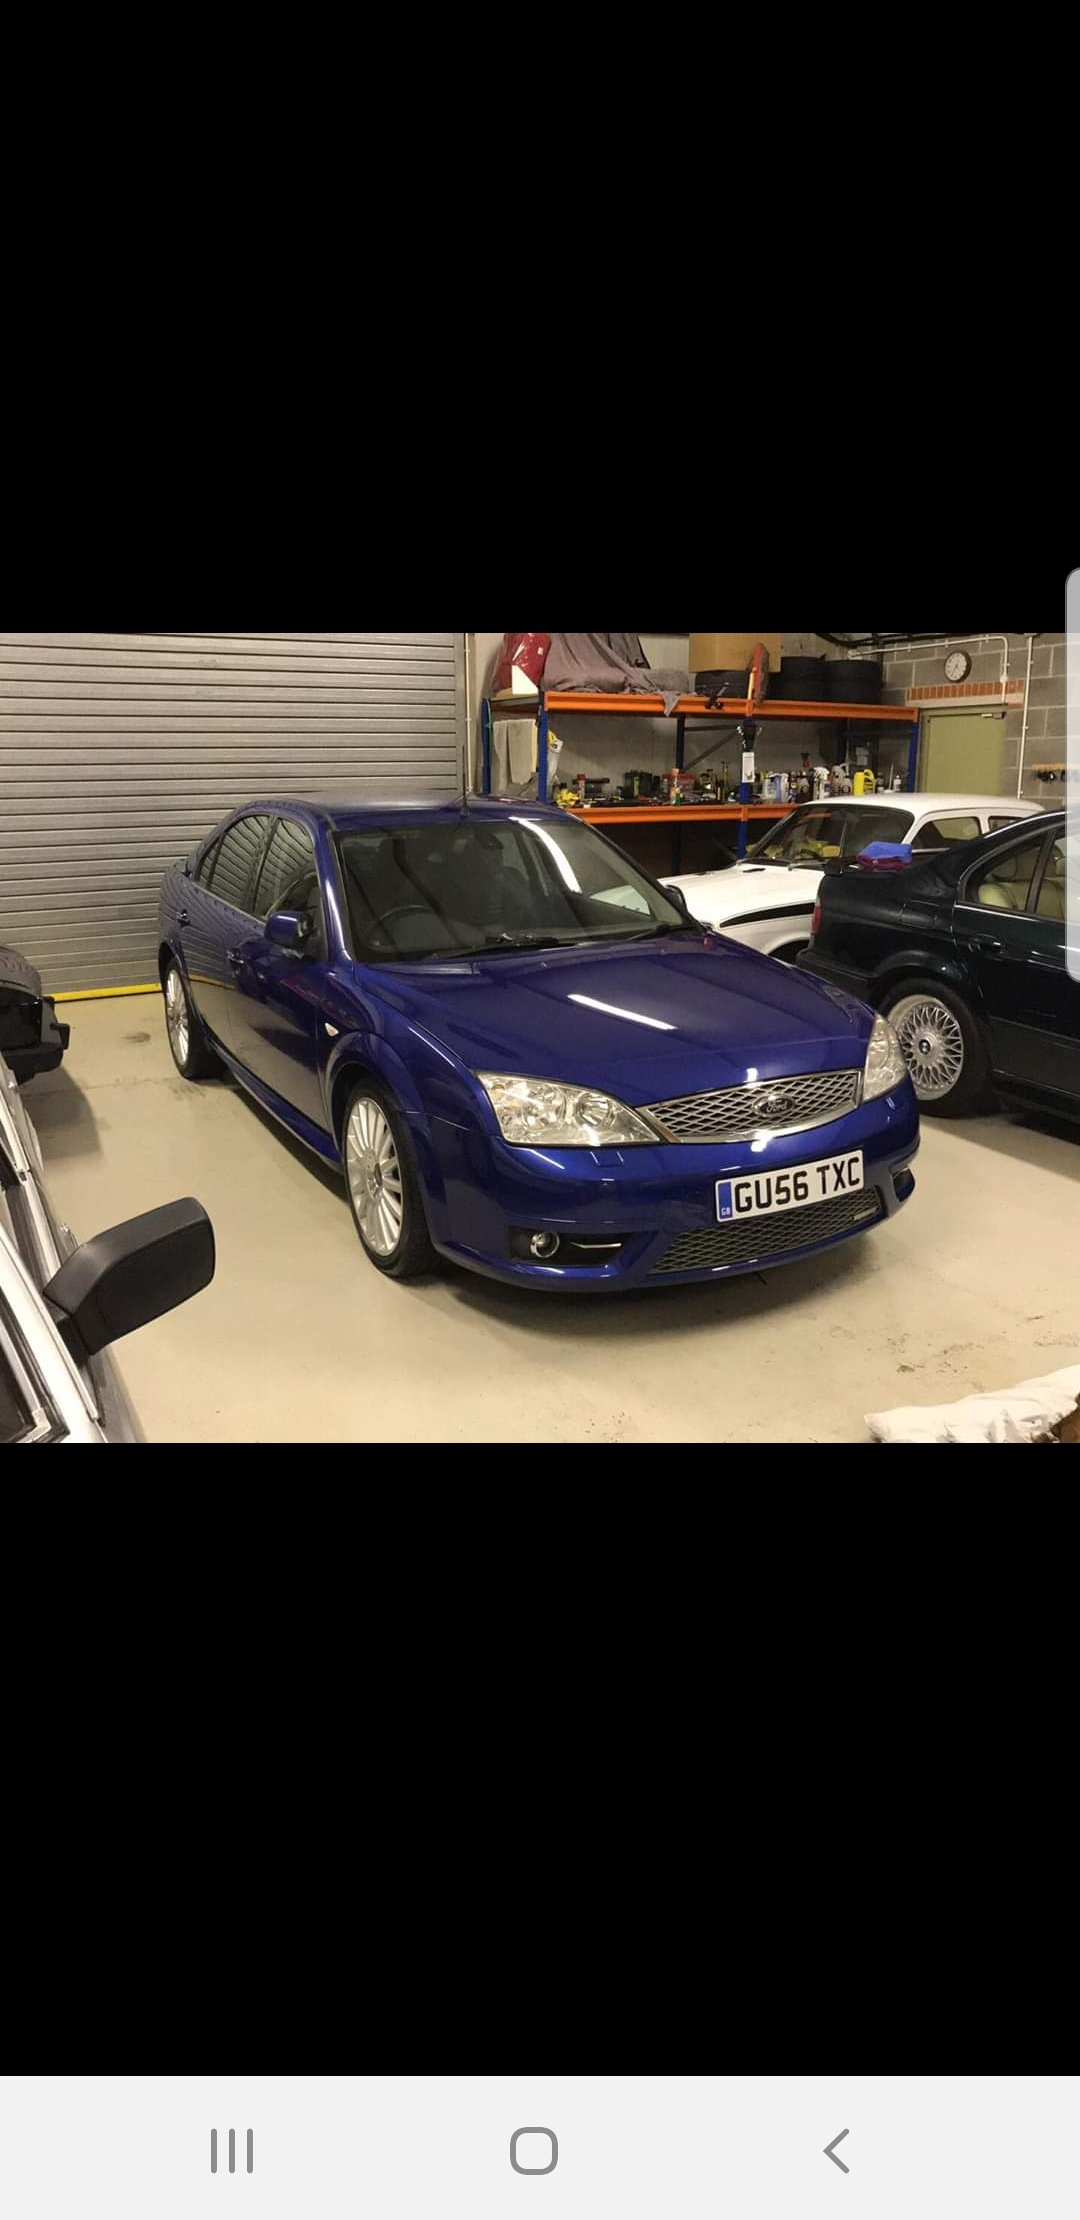 2006 Ford Mondeo ST220 For Sale (picture 1 of 6)